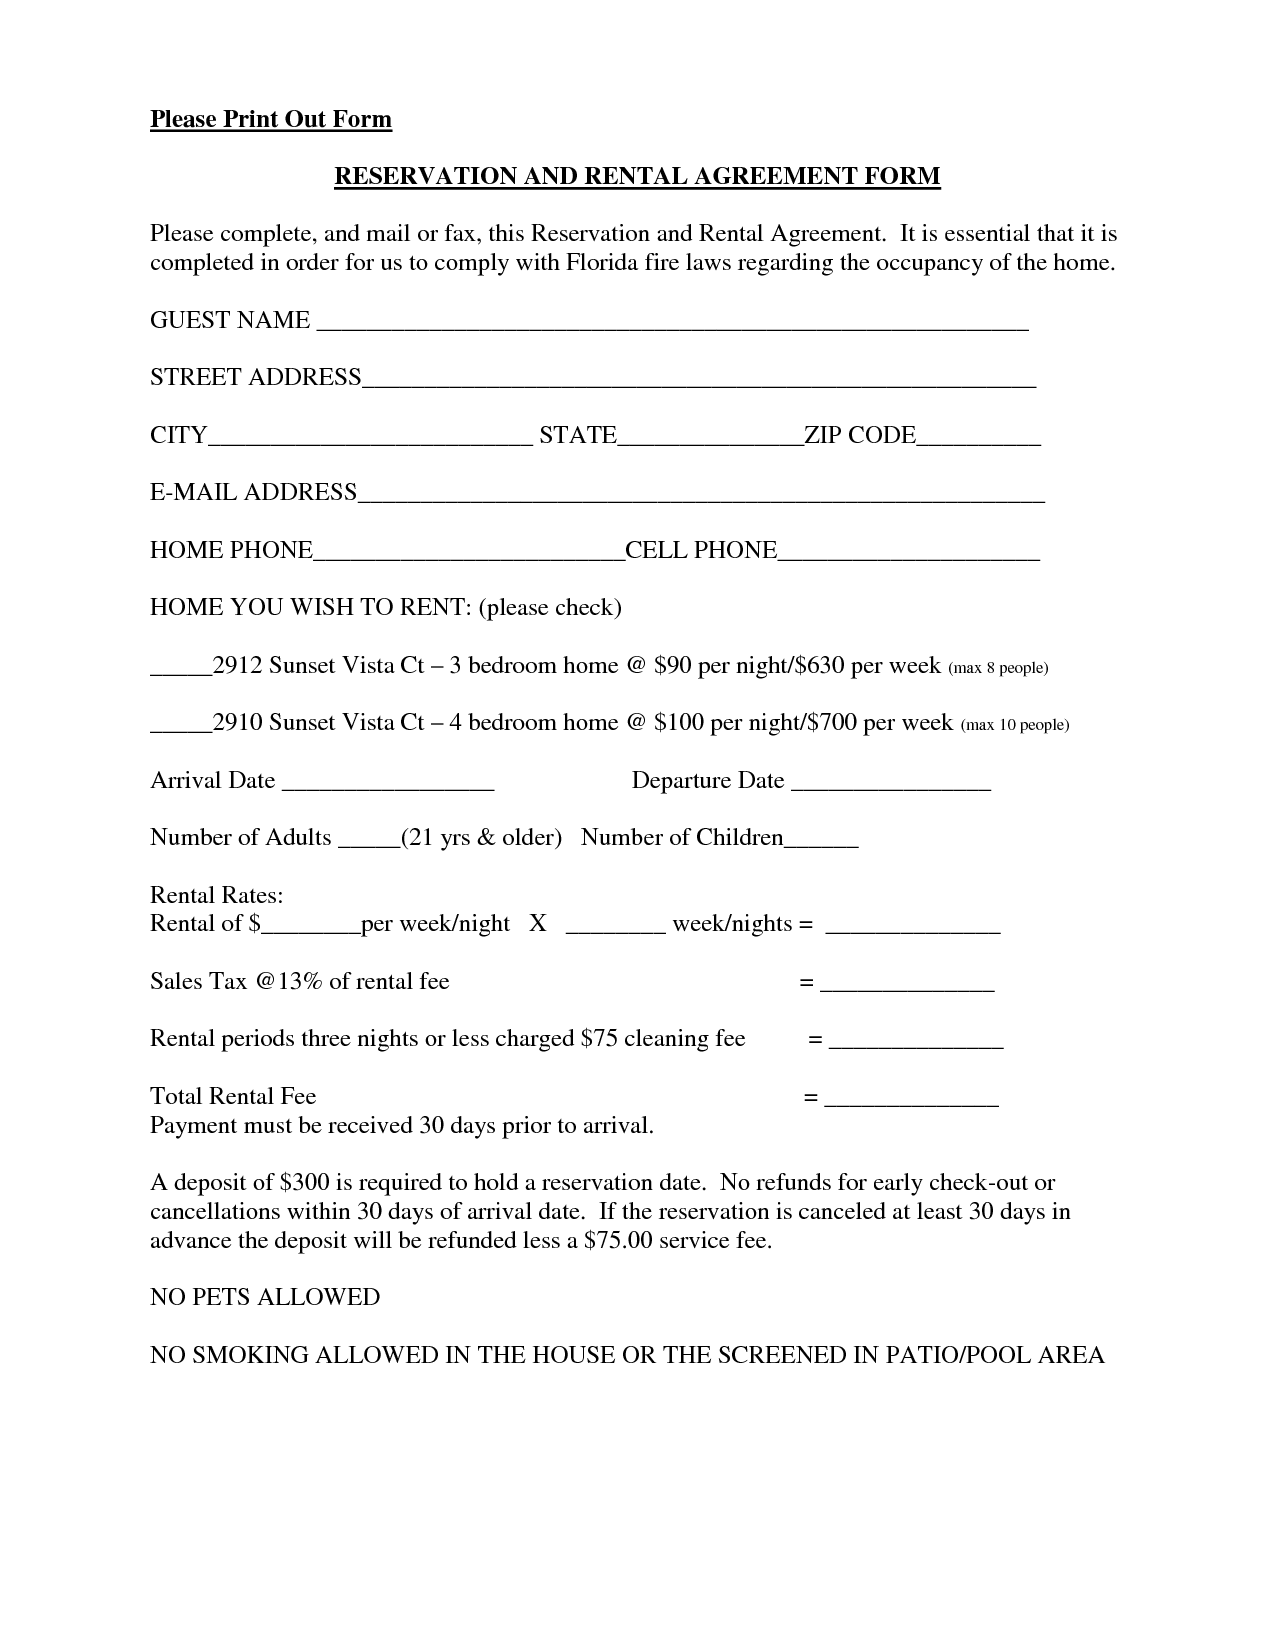 lease agreement form template – Format of Lease Agreement